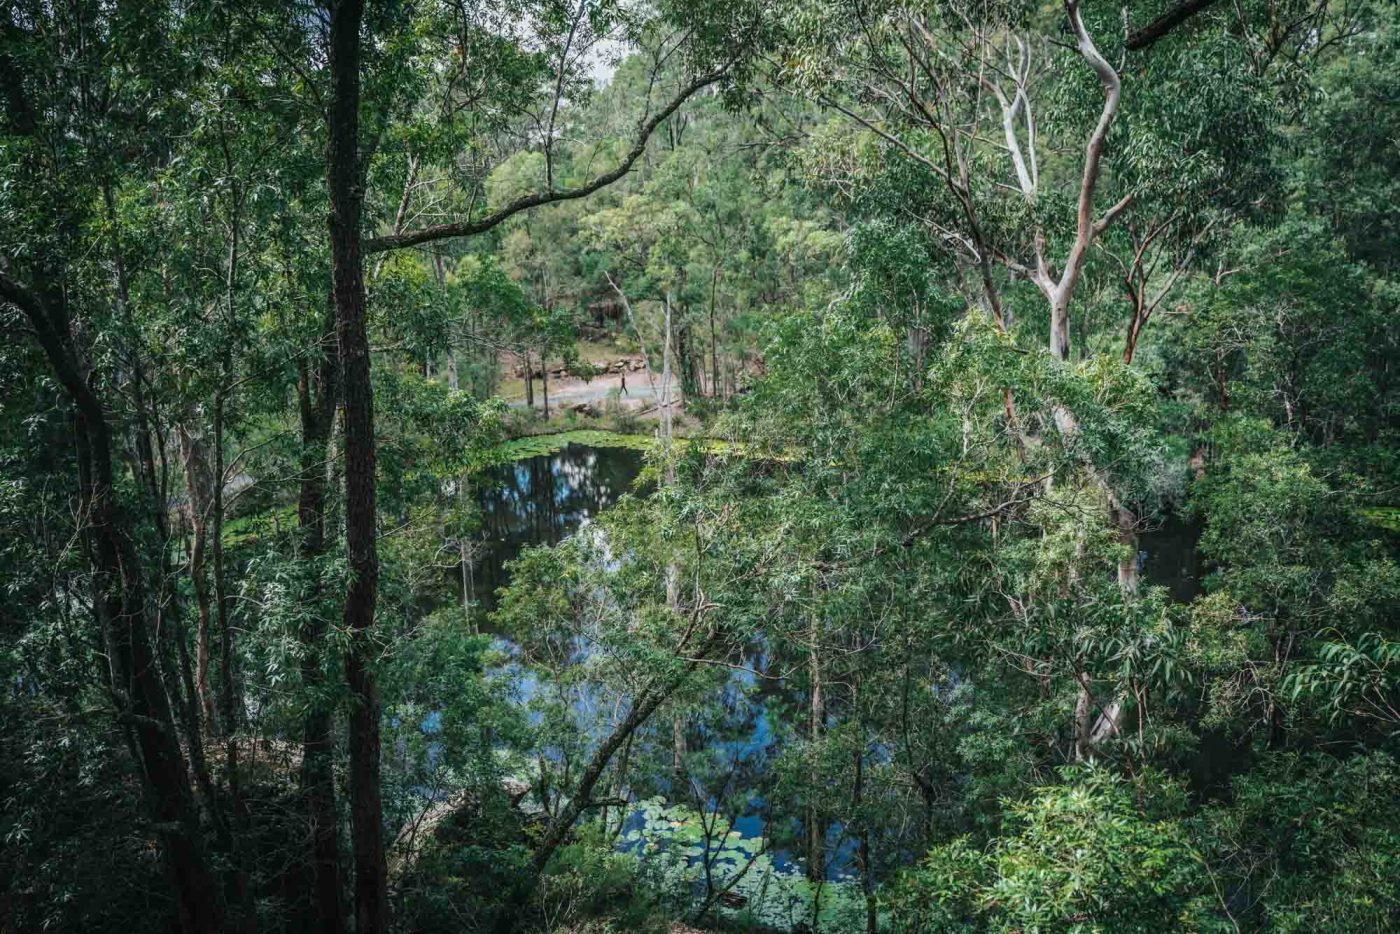 Lovely views of the billabong on site at the Billabong Retreat